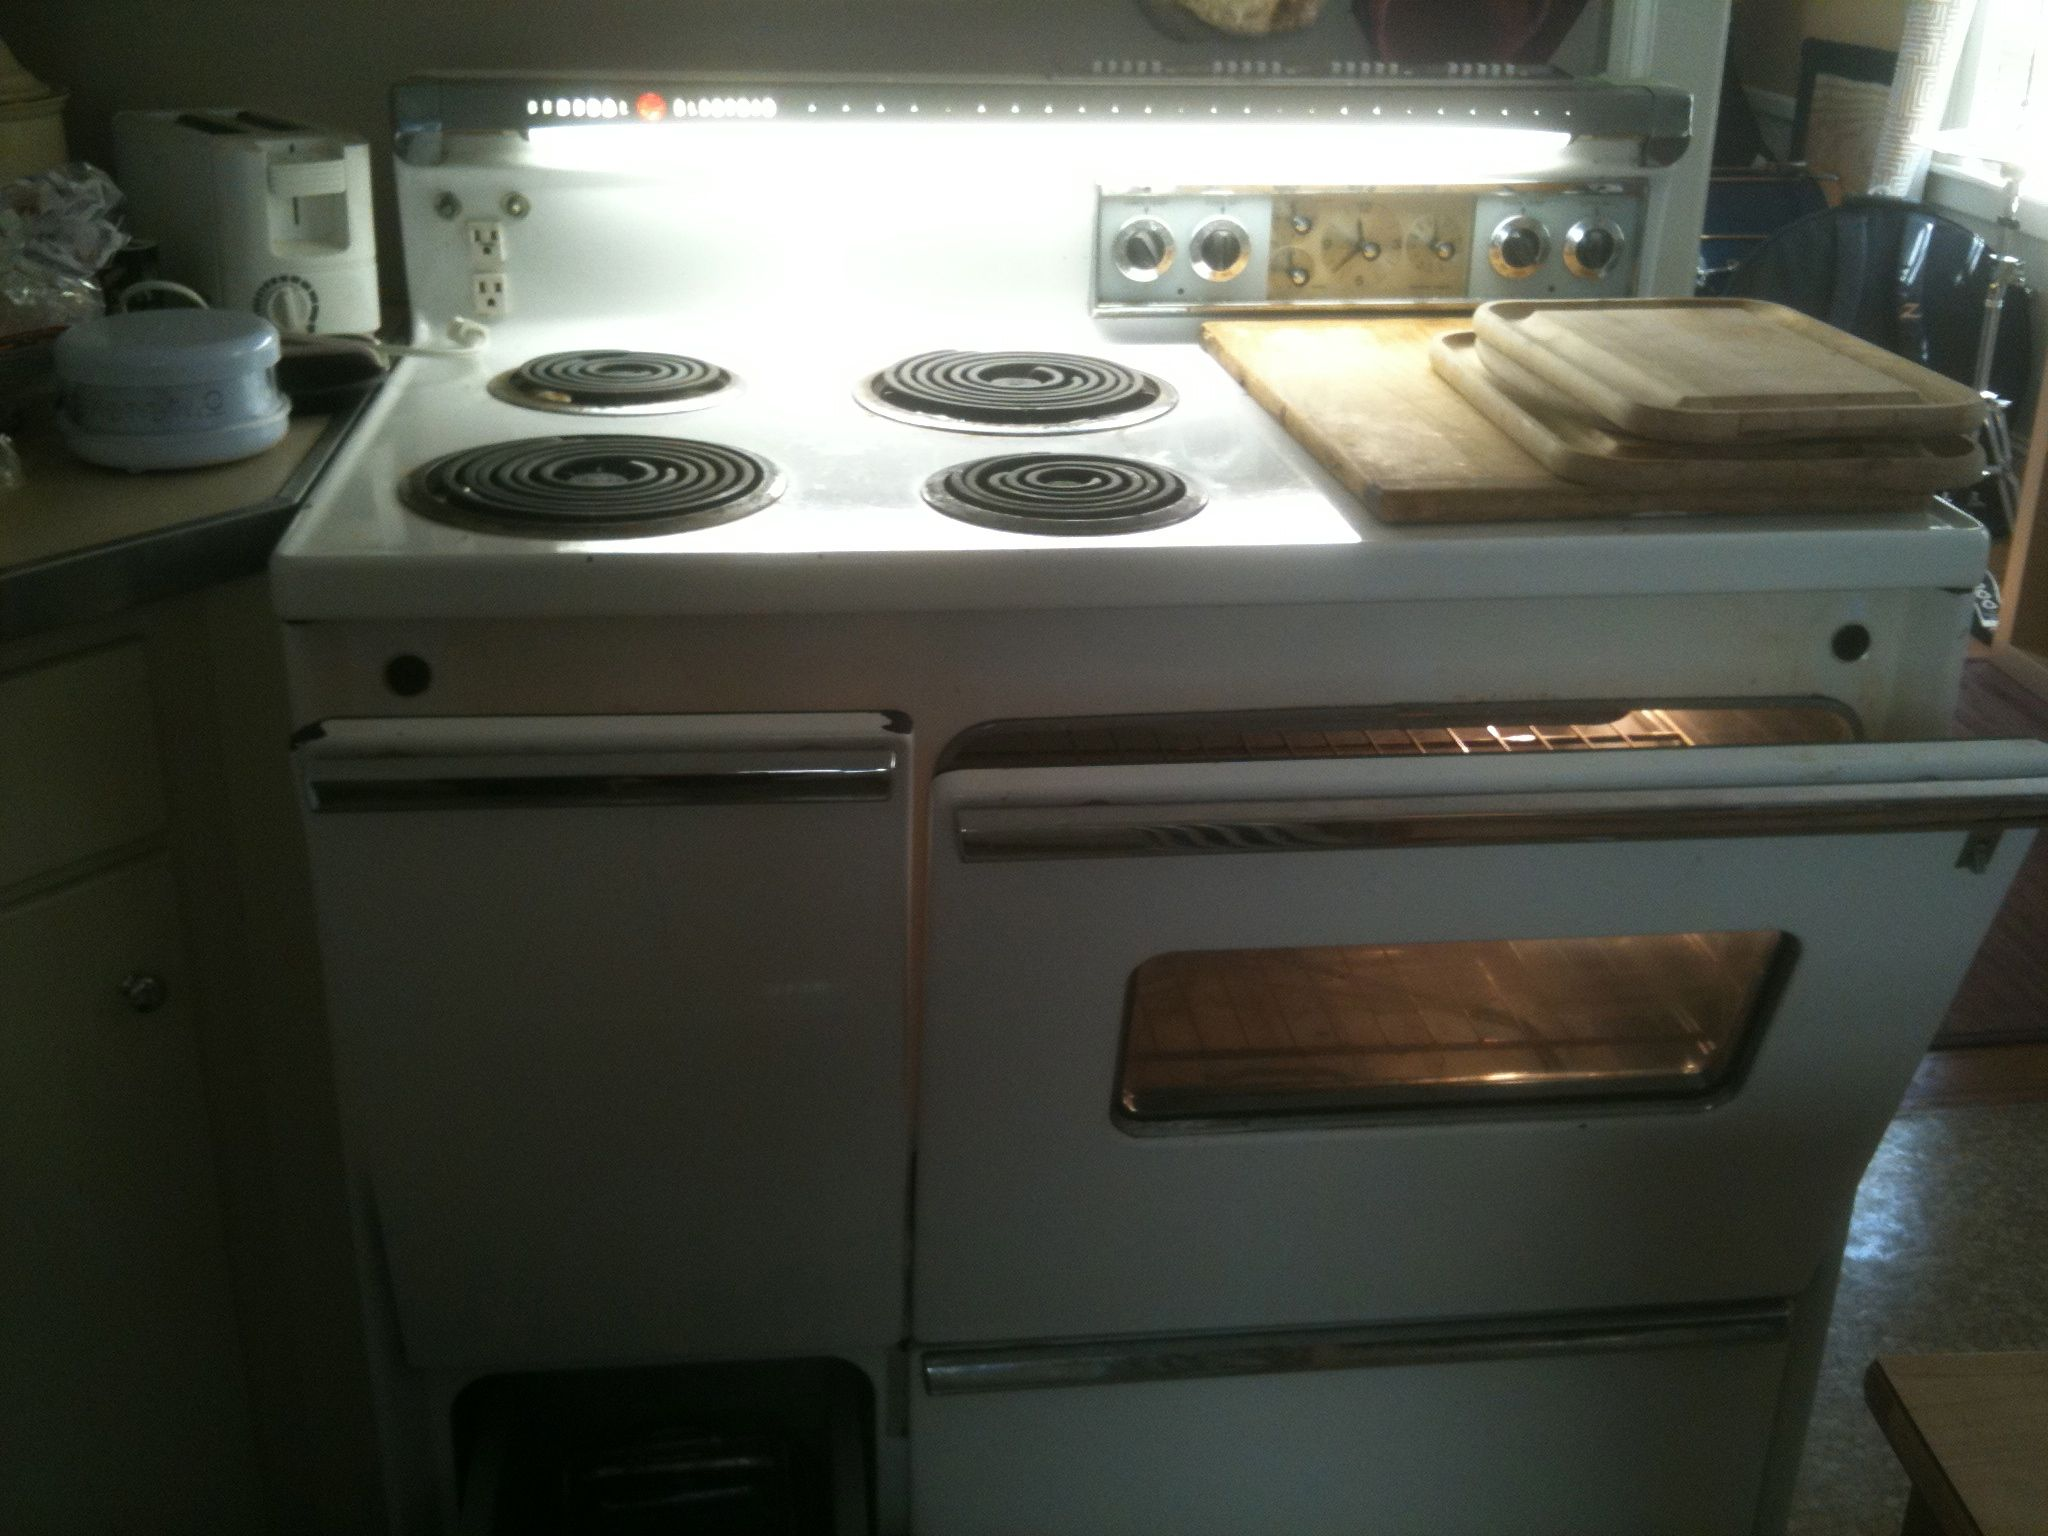 Vintage Electric Stoves For Sale Craigslist ~ Our ge electric stove oven